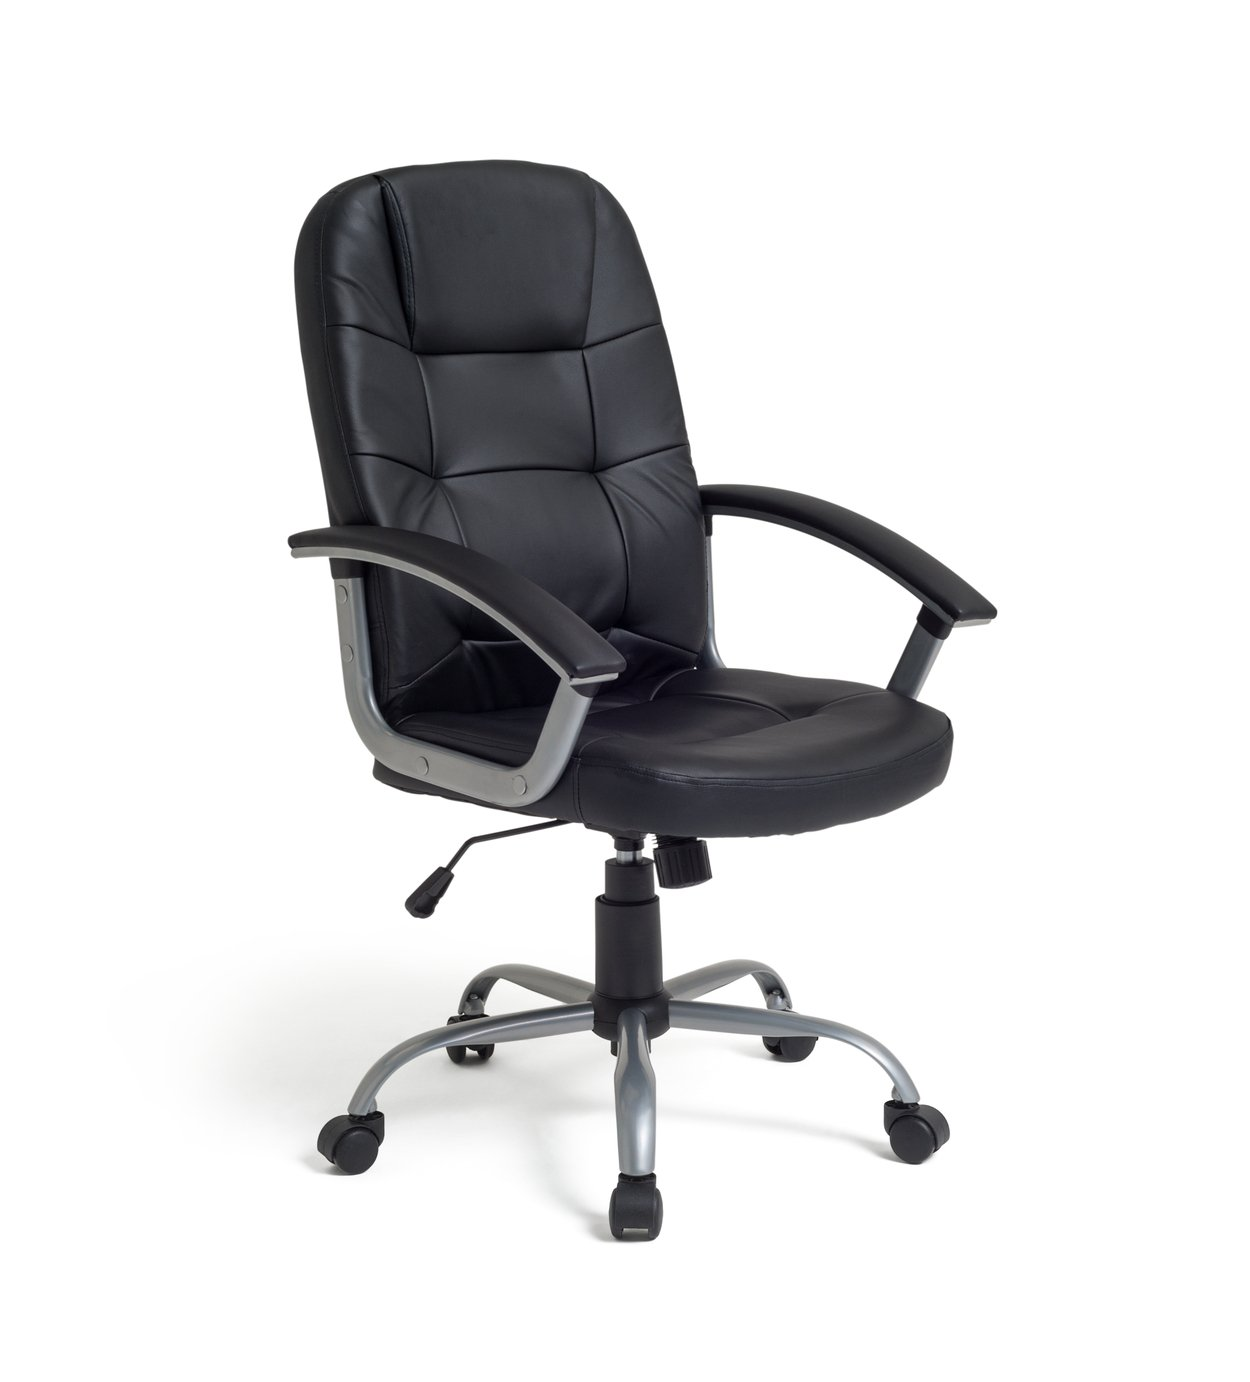 Buy Walker Height Adjustable Office Chair Black At Argos